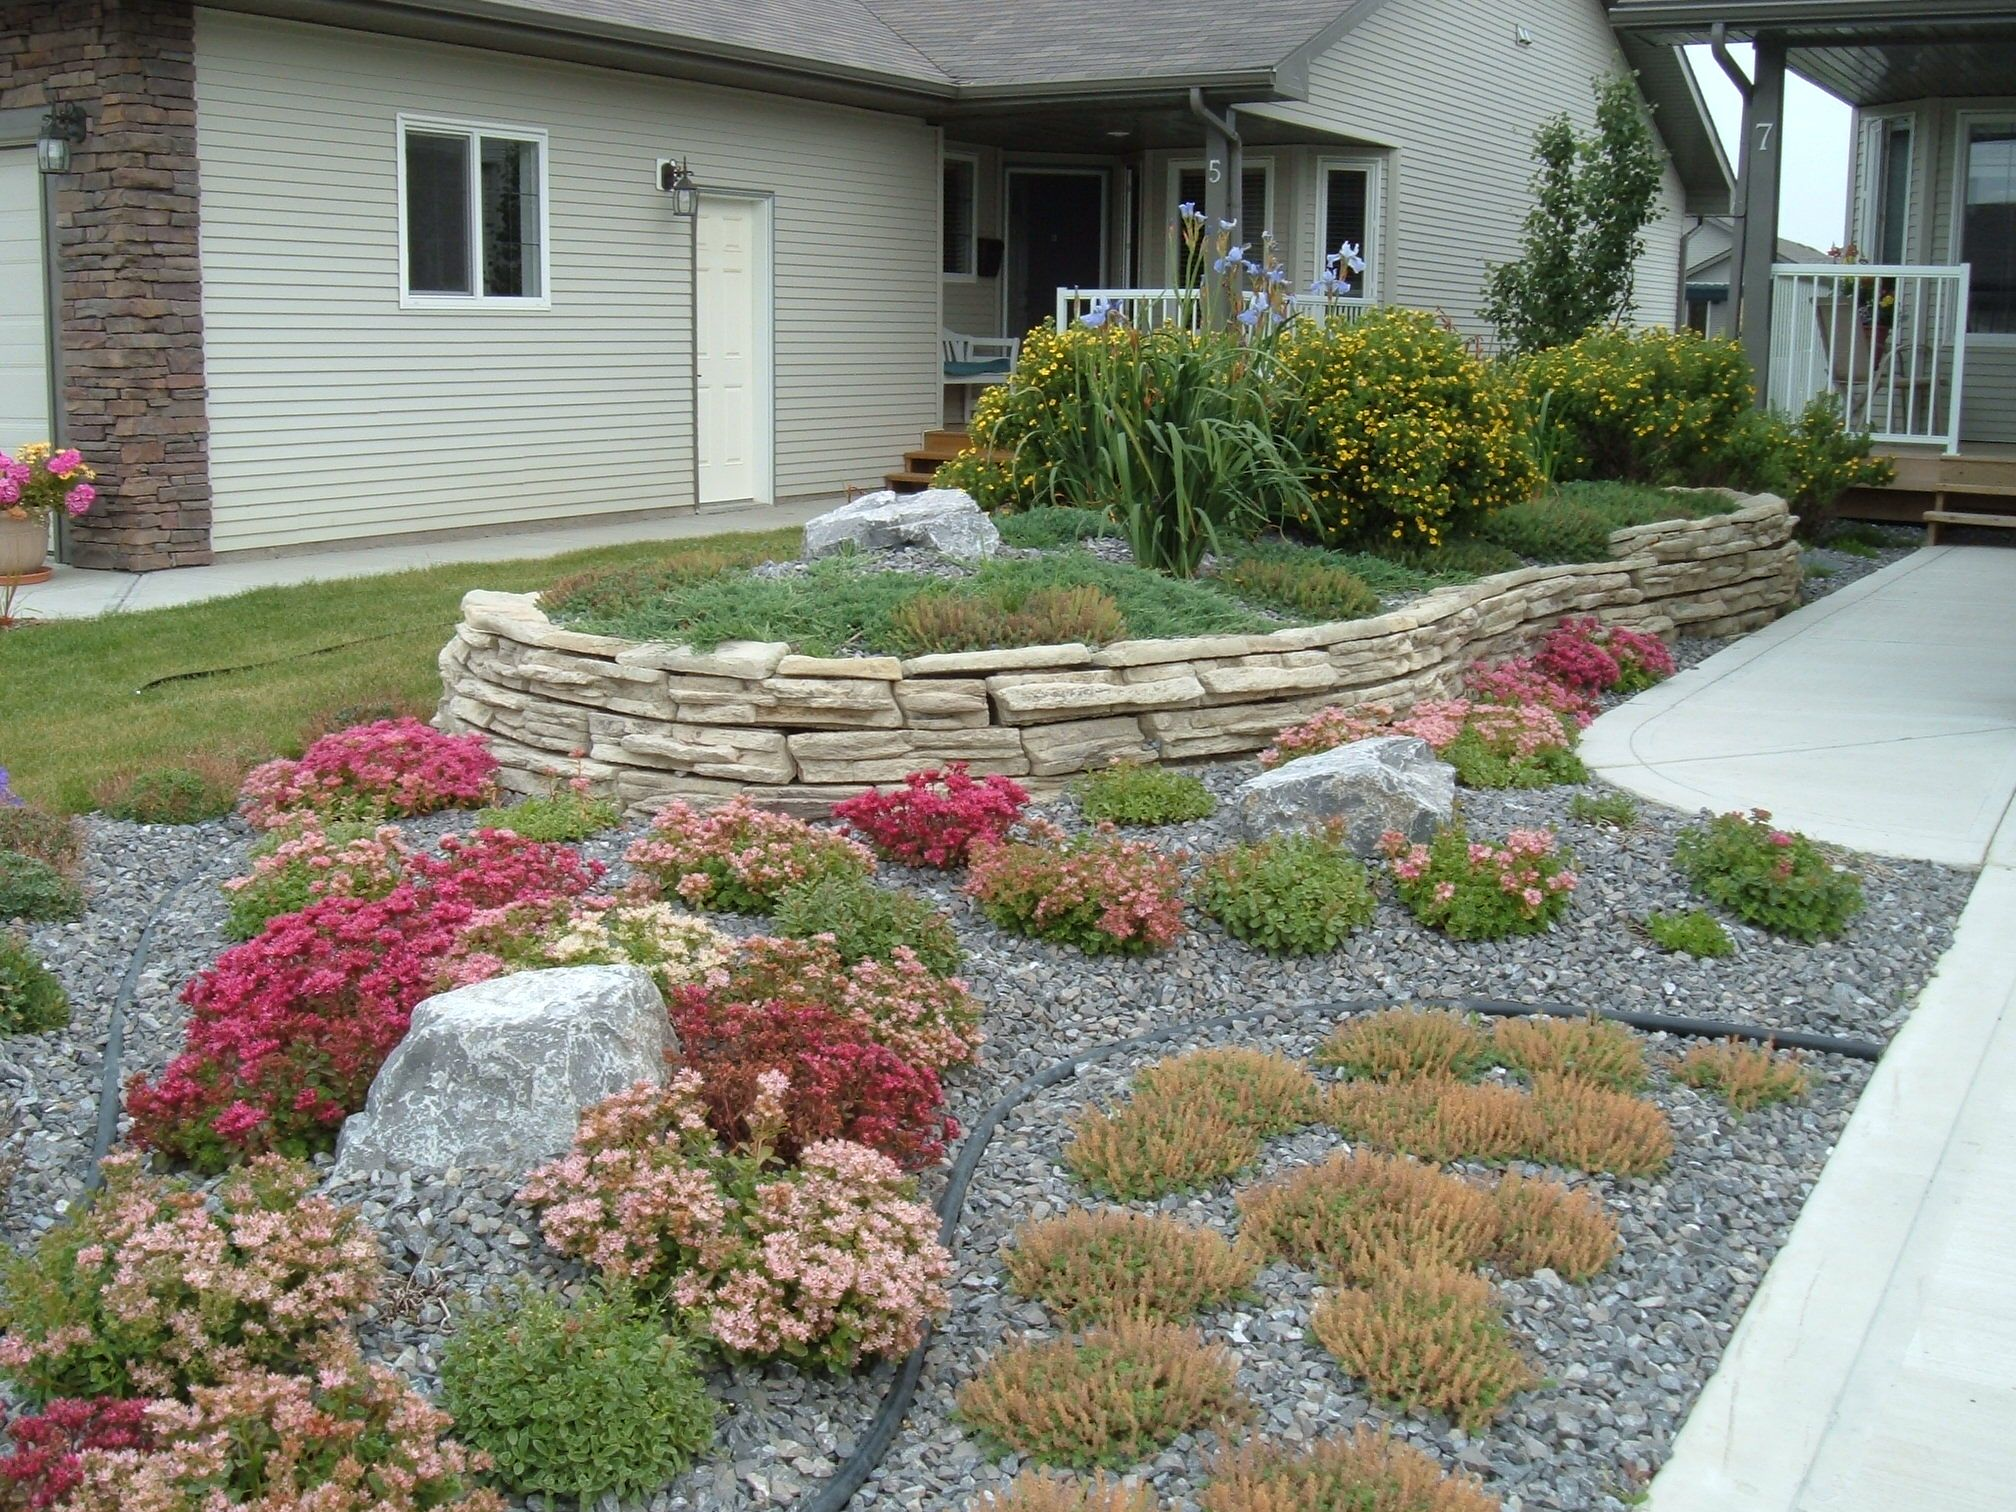 Minimal maintenance landscaping a no lawn front yard with for Best no maintenance plants